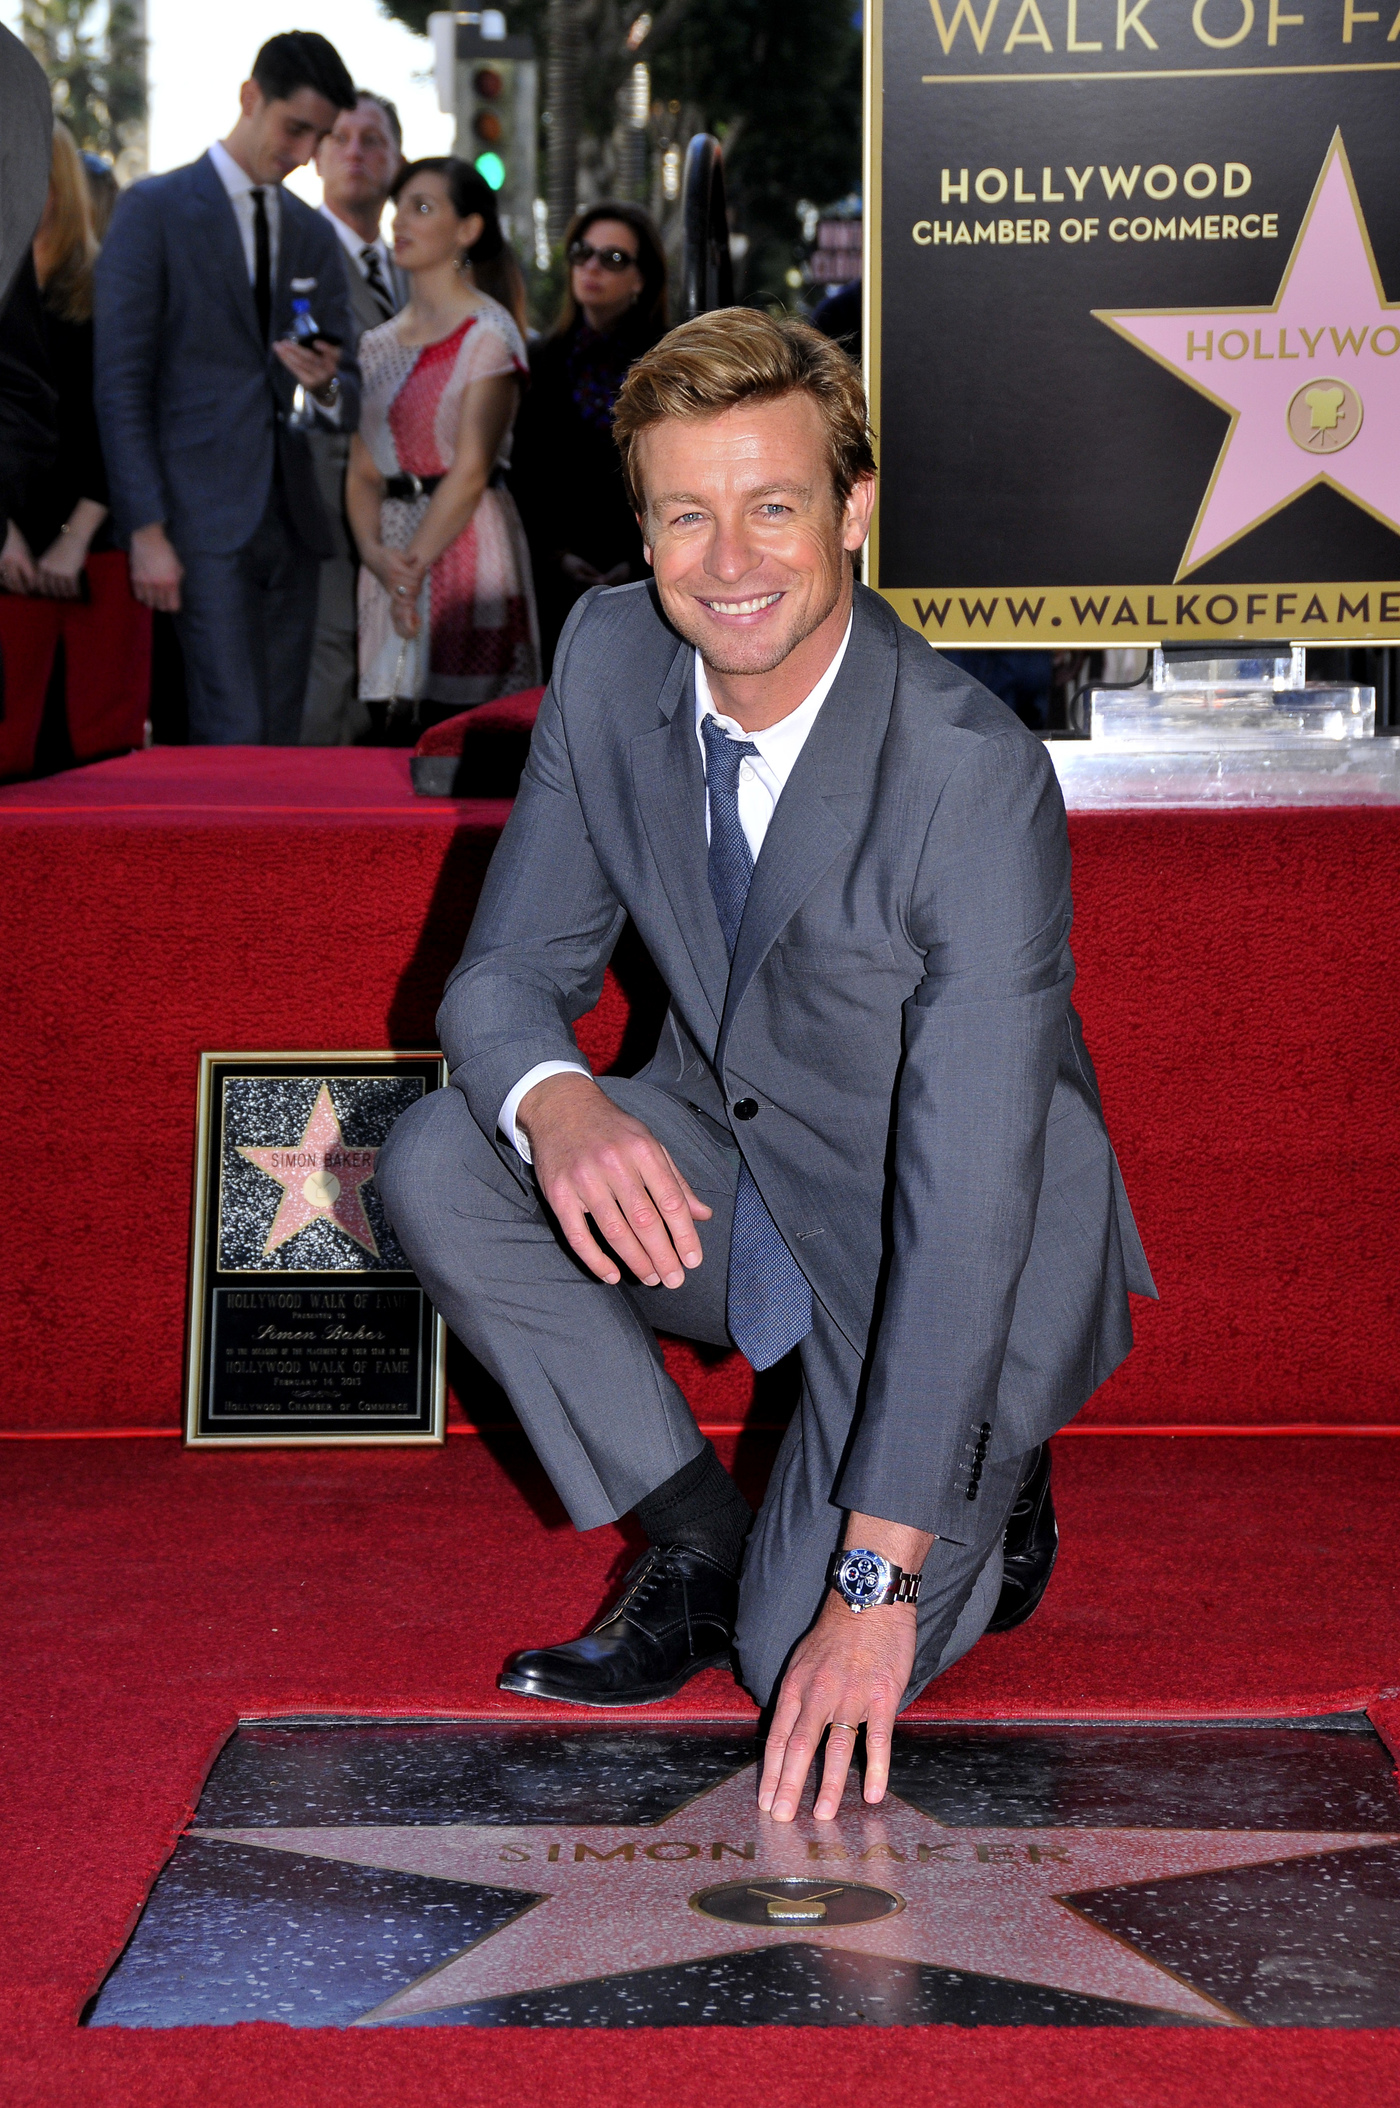 Longines Corporate Event: Longines Ambassador of Elegance Simon Baker honored 2